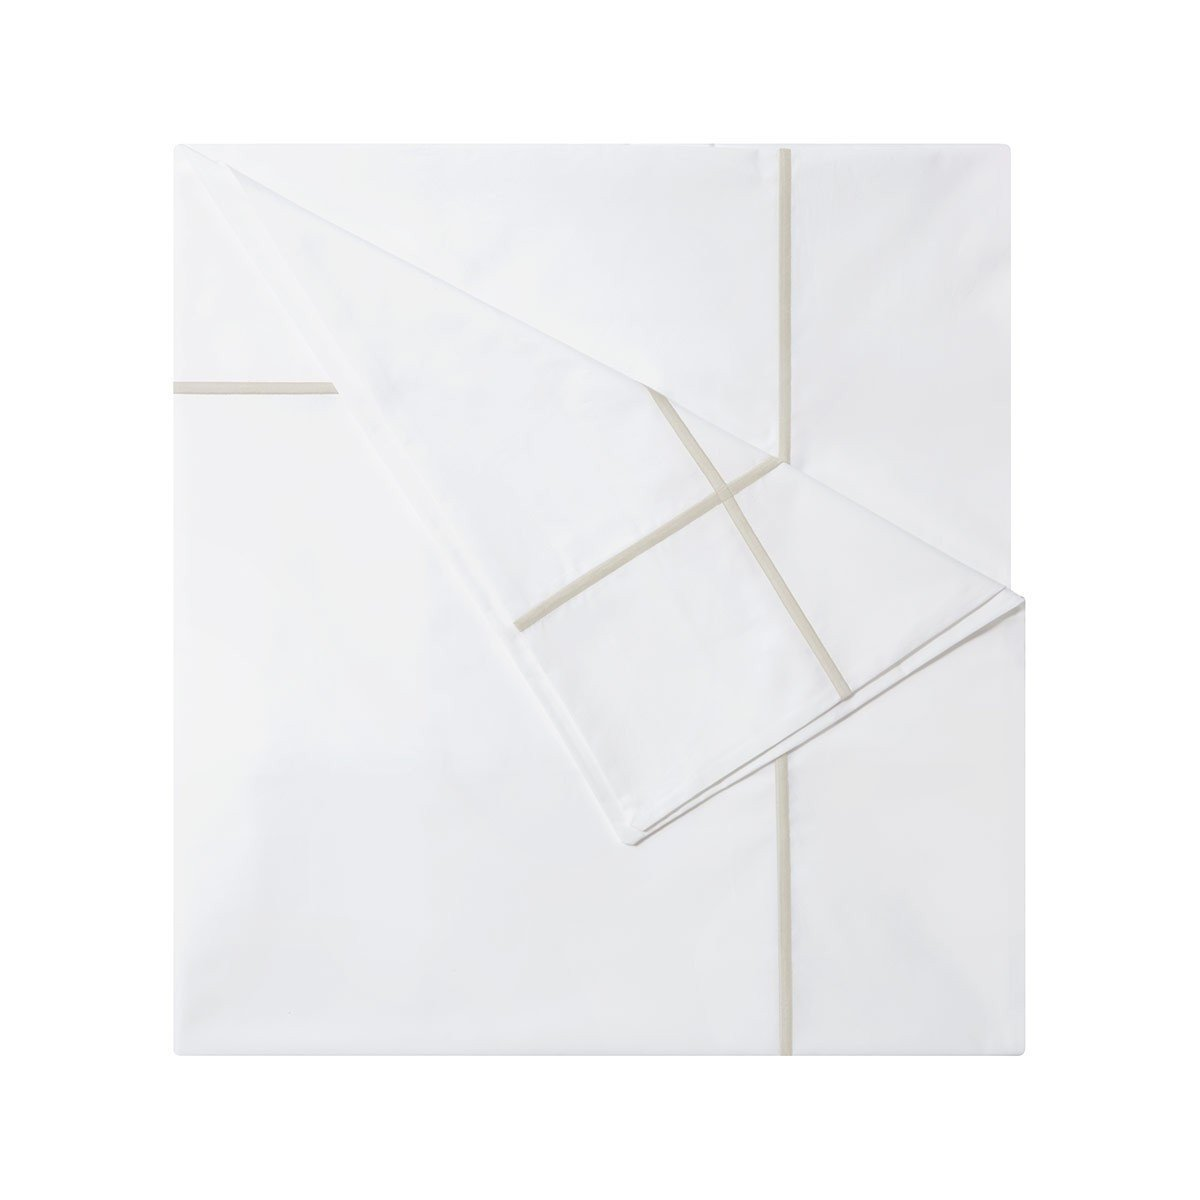 Athena Nacre Bedding Collection by Yves Delorme | Fig Linens - White and ivory duvet cover